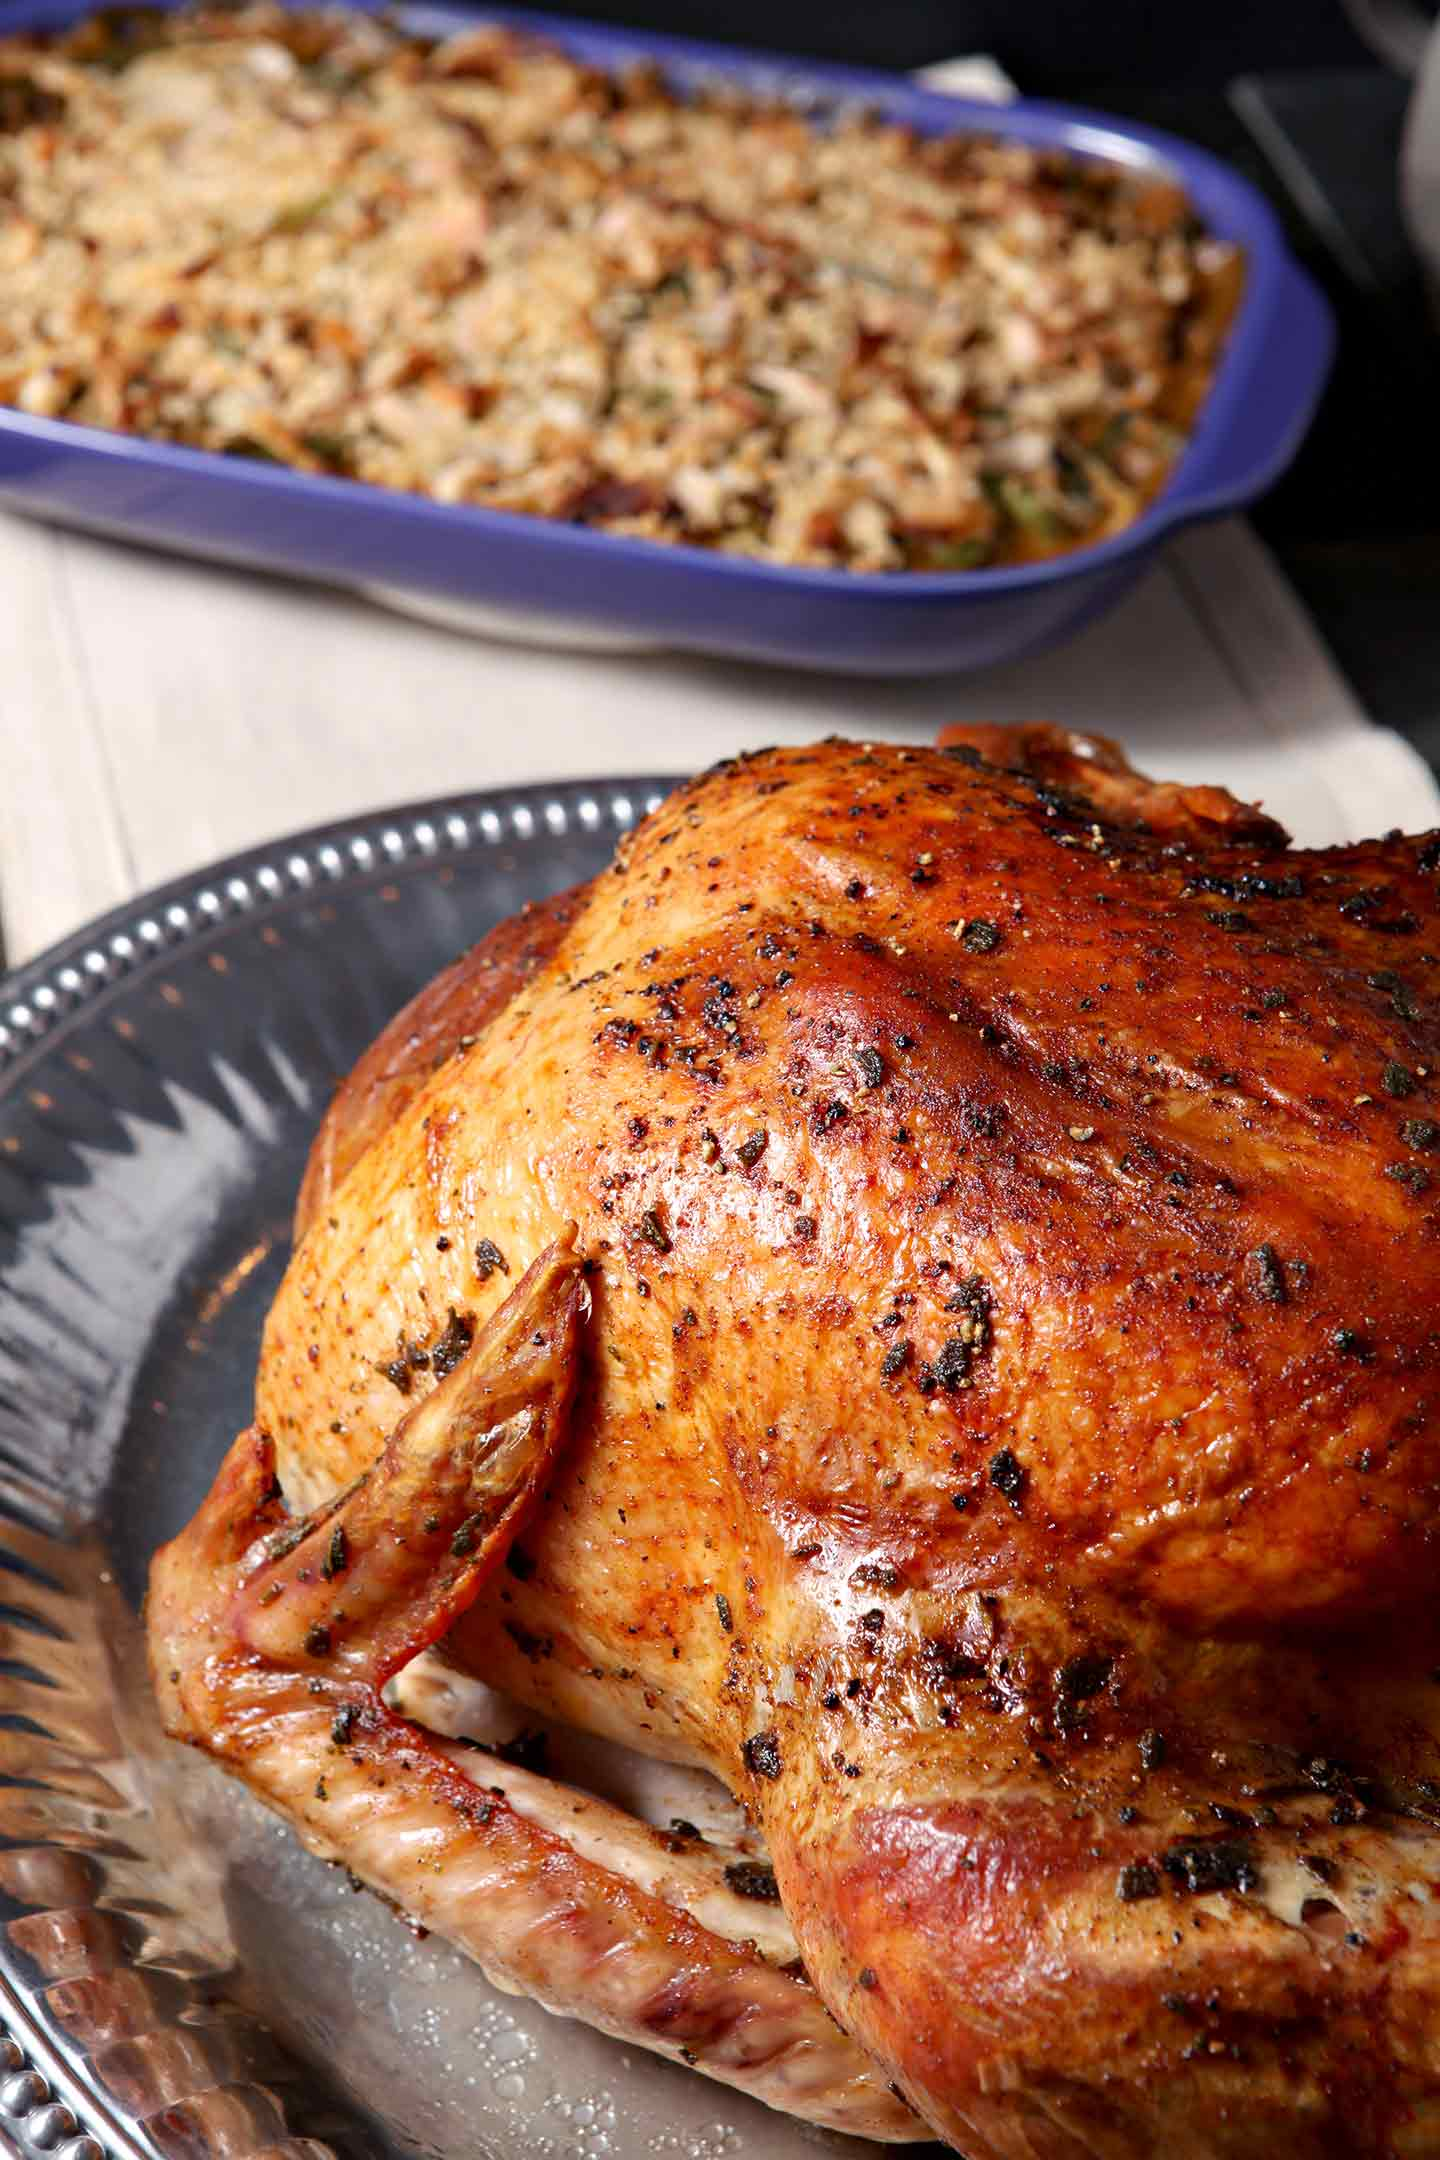 Prepare a showstopping entree for the holidays this year! Browned Butter Sage Turkey is a decadent twist on the classic roasted turkey. Brown butter in a pan with fresh sage, then slather a Honeysuckle White Fresh Whole Turkey with the sage browned butter. Bake until golden brown, and serve warm with homemade gravy and traditional sides! This turkey makes a flavorful entree for Thanksgiving or ANY holiday celebration! #ad #HonestSimpleTurkey